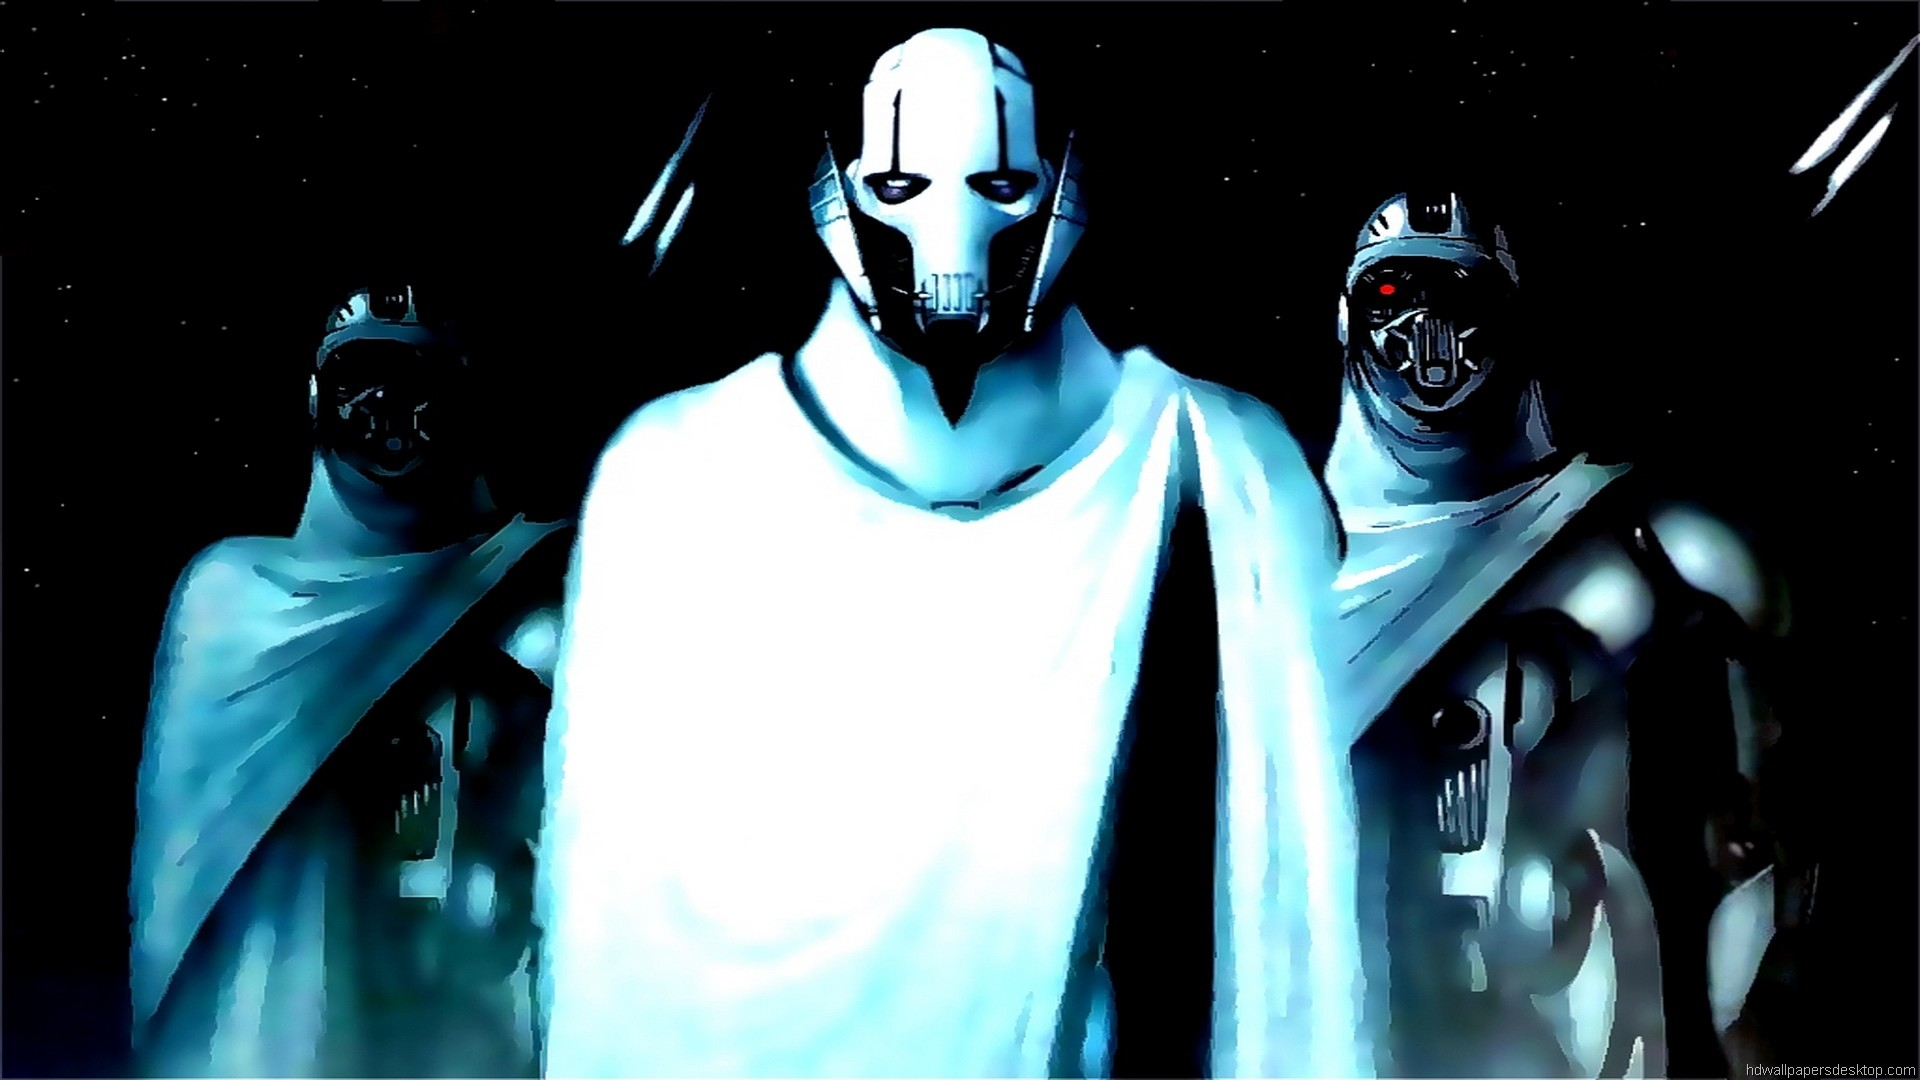 General Grievous Wallpaper Hd 66 Images